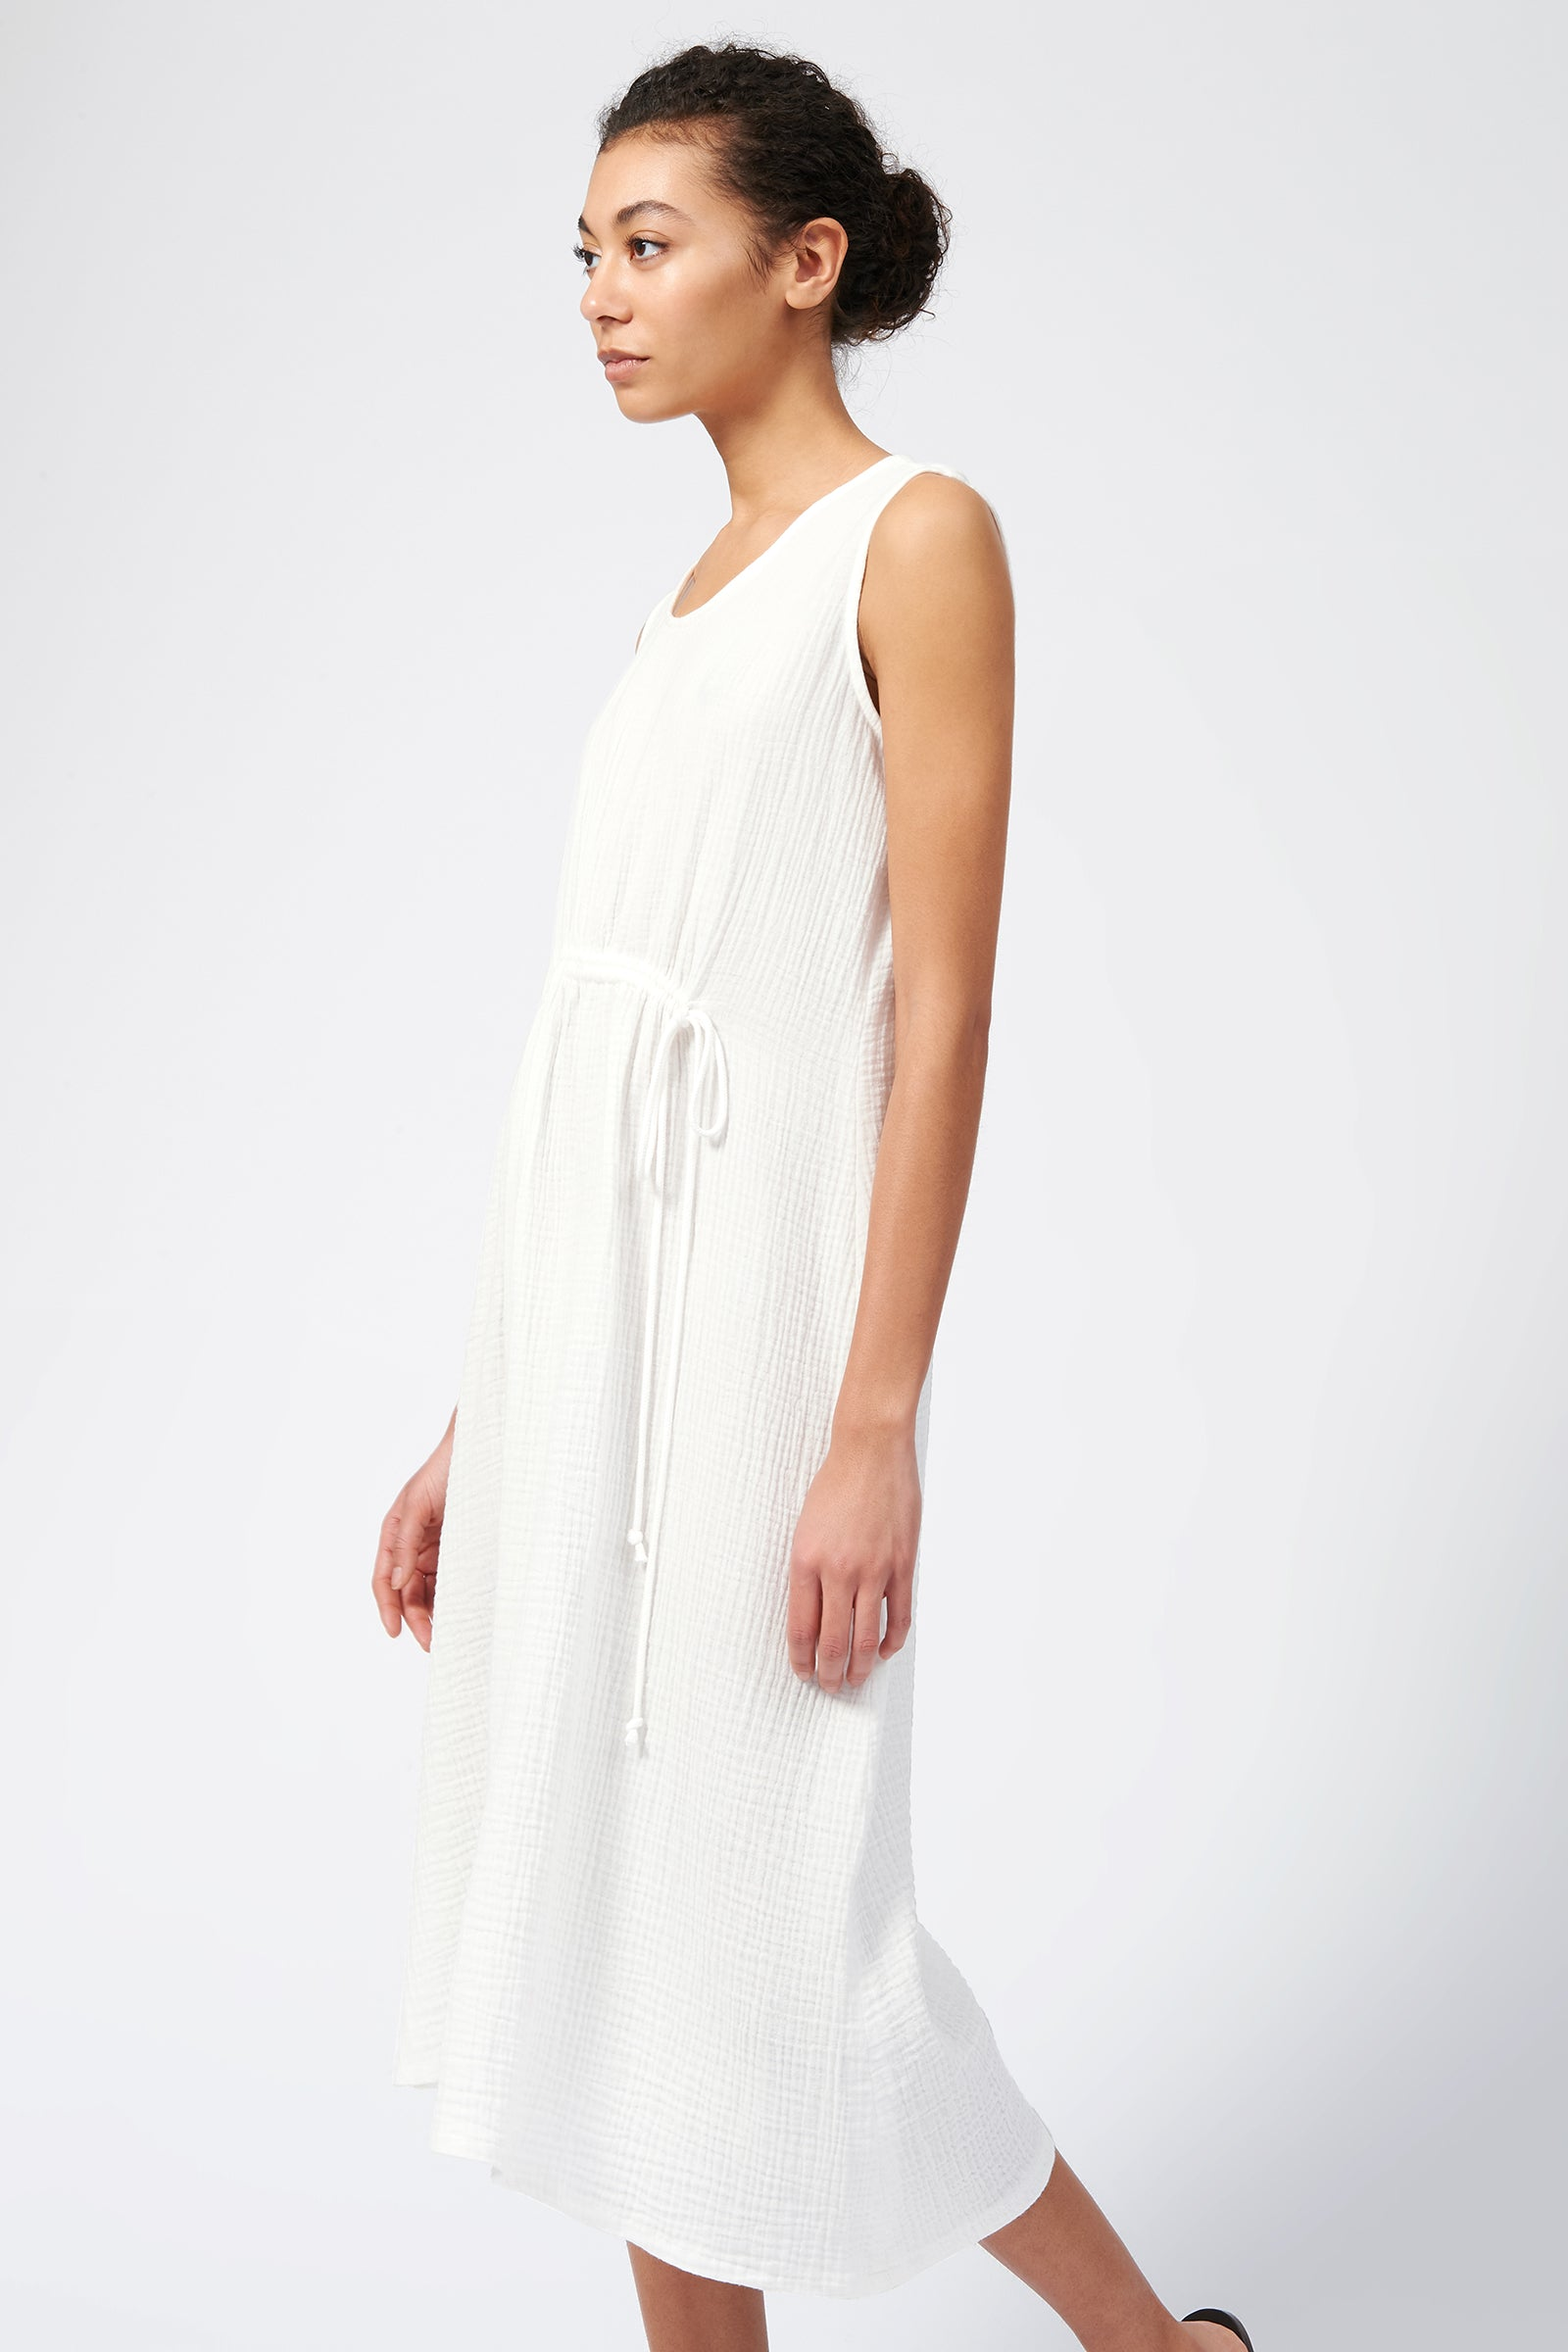 Kal Rieman Cinched Front Dress in Natural on Model Side View